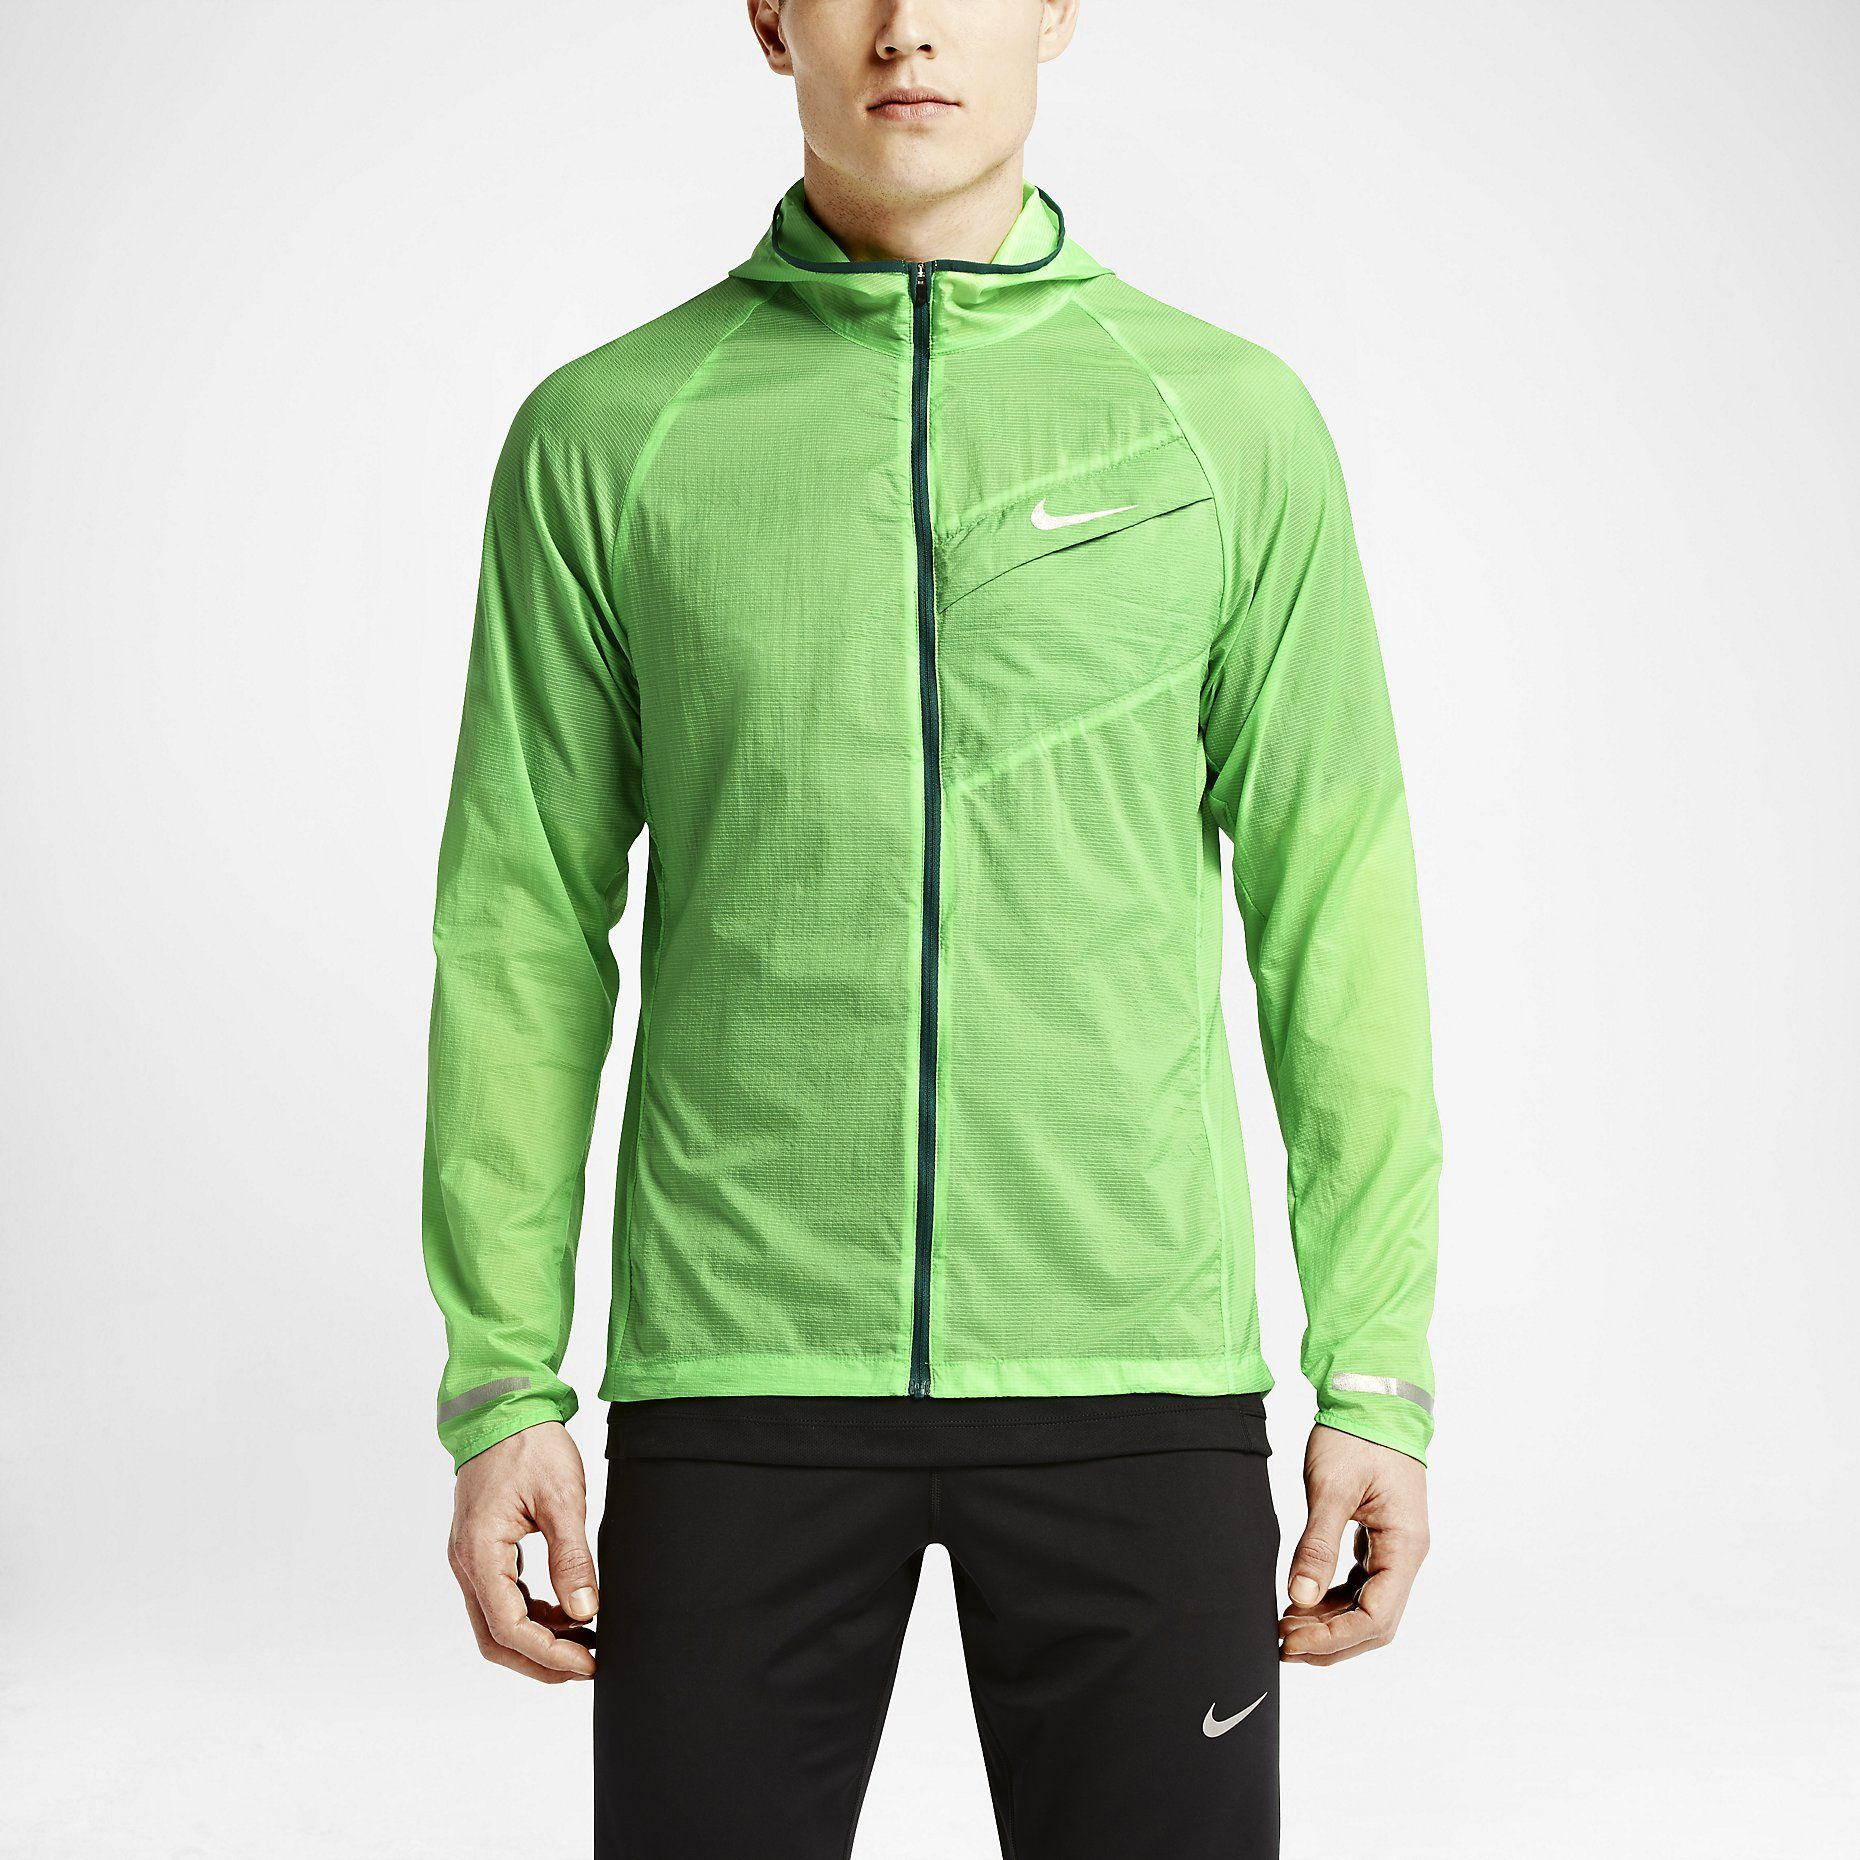 758d5849d354 Nike Impossibly Light Men s Running Jacket. Nike Store